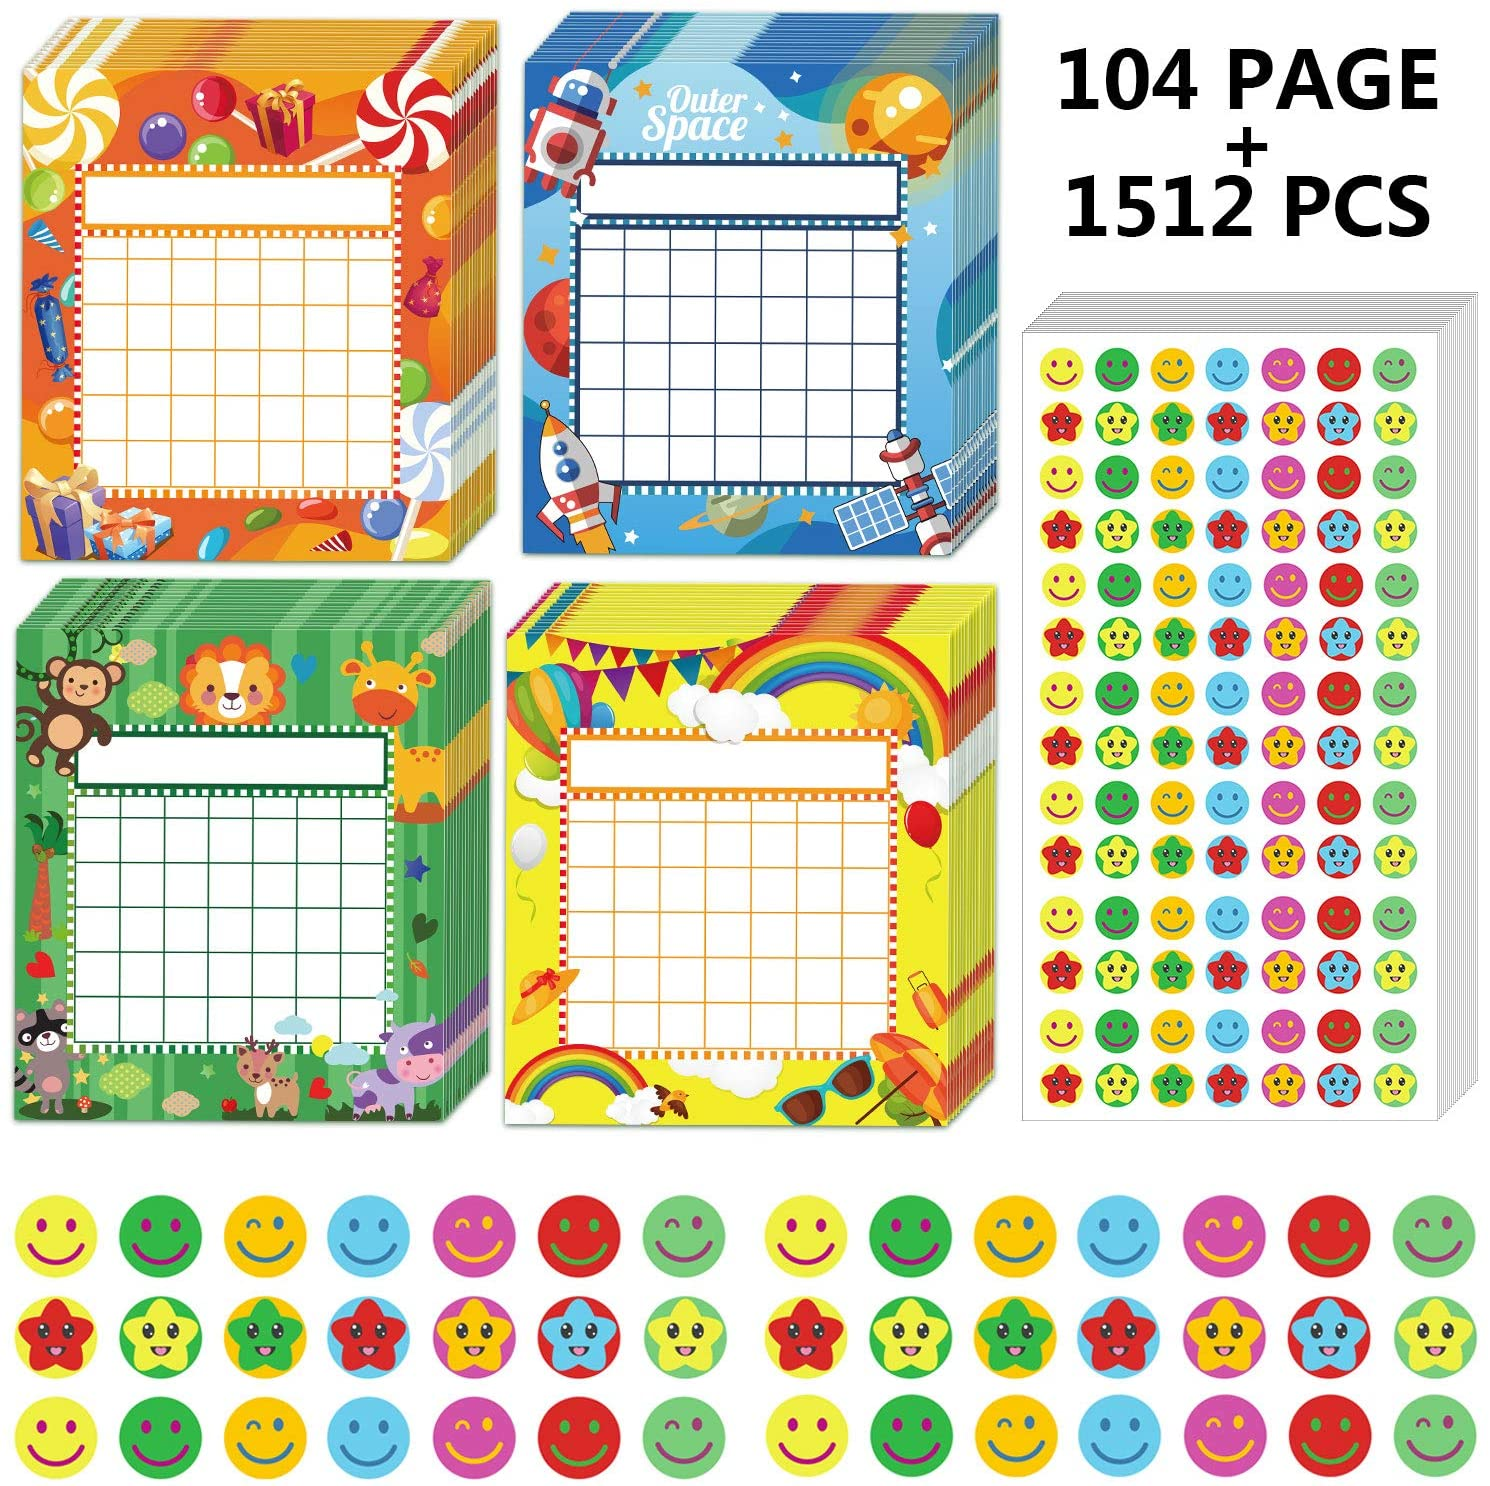 60 Pieces Classroom Incentive Charts Colorful Incentive Charts with 1960 Pieces Reward Face Star Stickers for Classroom Teaching Family Supplies